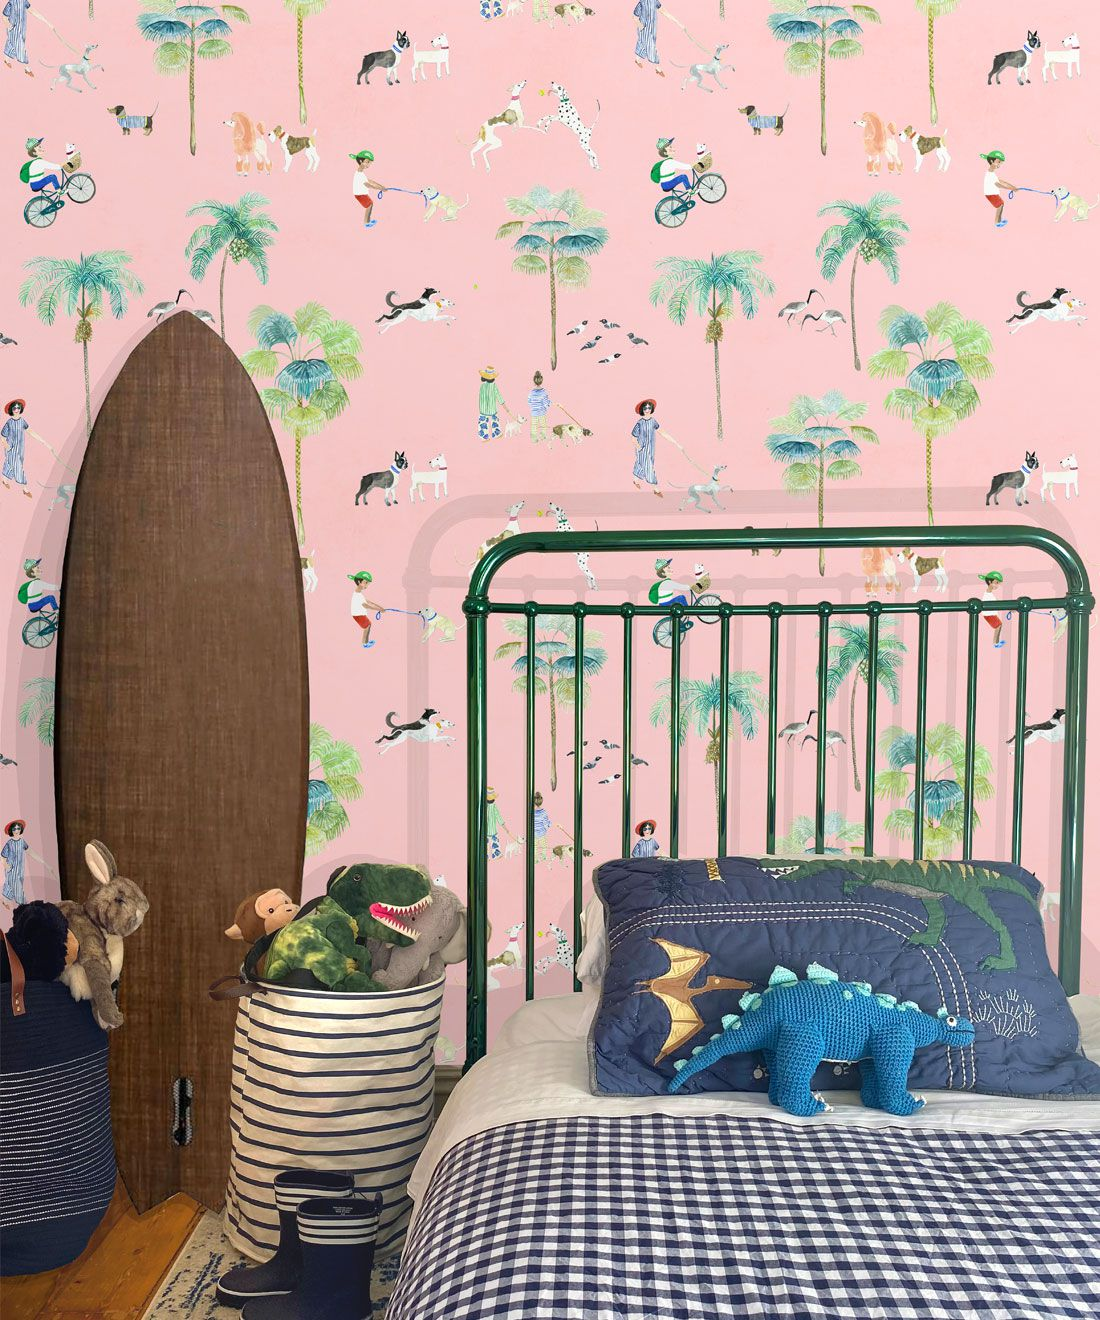 At The Dog Park Wallpaper • Kids Wallpaper • Pink • Insitu